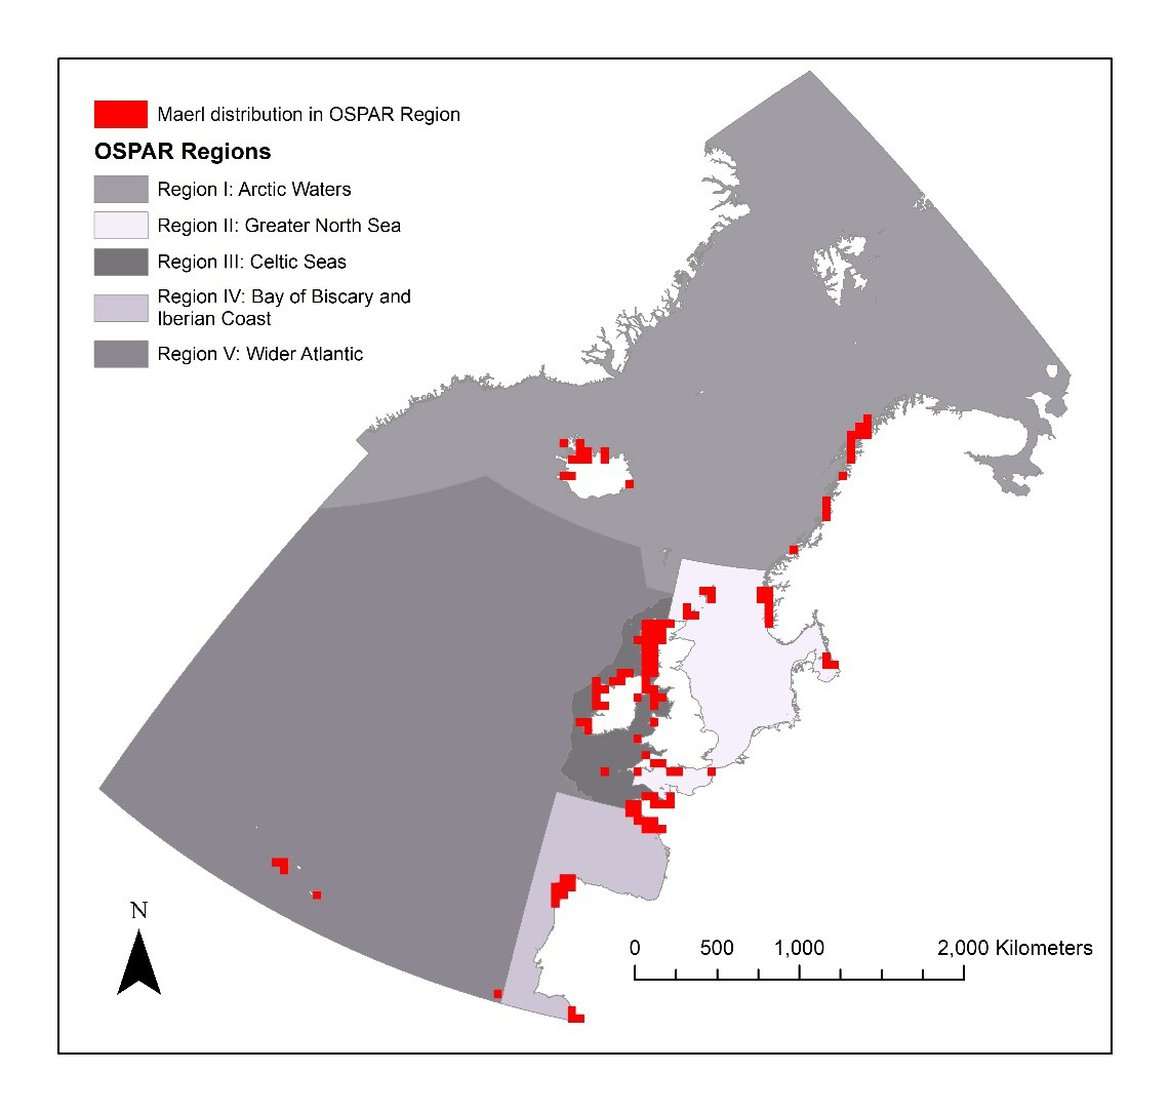 Figure 1 Distribution of 50 km squares containing maerl beds in the OSPAR maritime area, based on OSPAR T&D database (2018) and Article 17 data on Lithothamnium corallioides and Phymatolithon calcareum distribution from Spain.